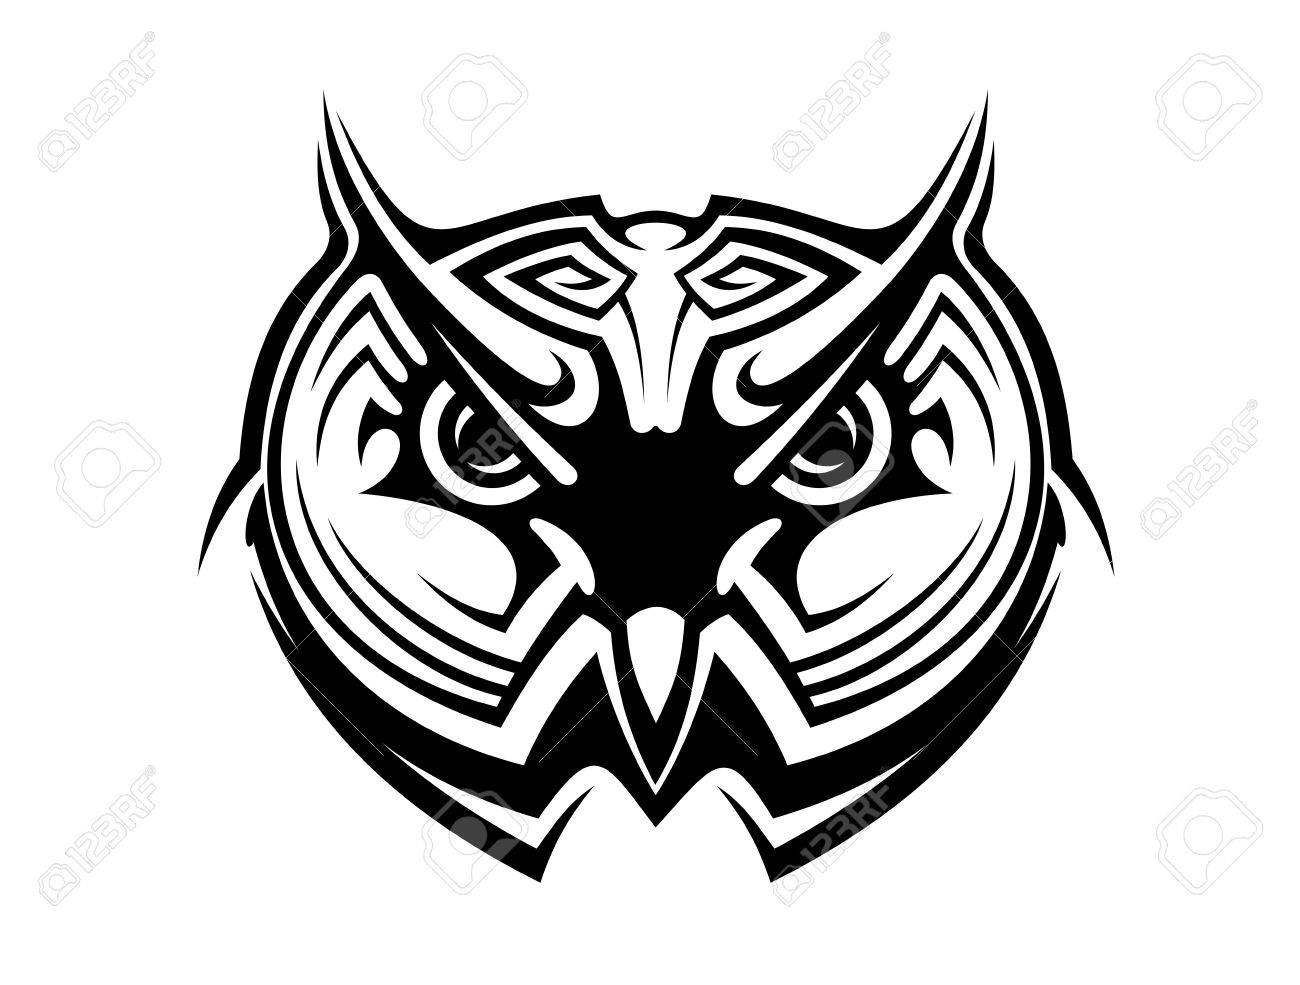 1300x985 Tribal Owl Tattoo For Mascot Design In Black And White Royalty